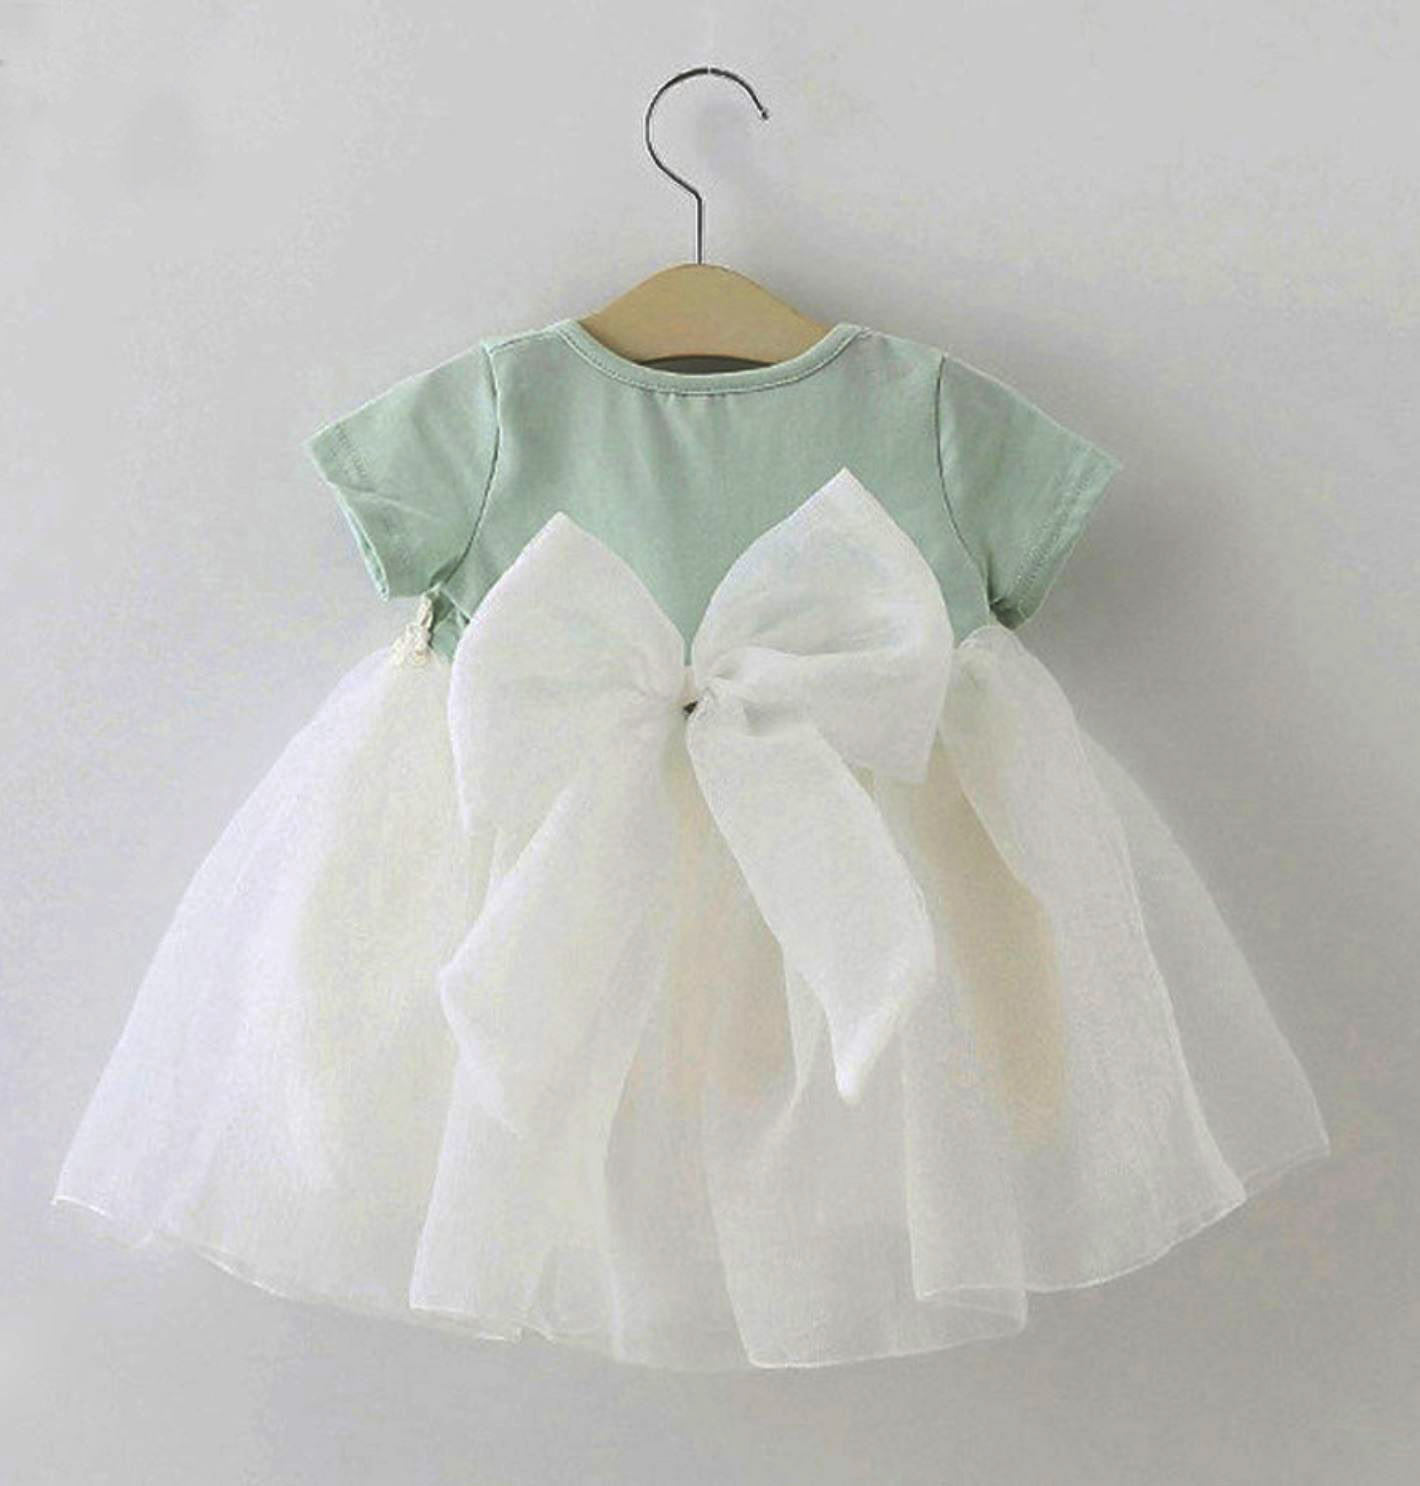 Mintgreen Baby Dress Bowknot Cute Summer And Spring Outfit 3 6